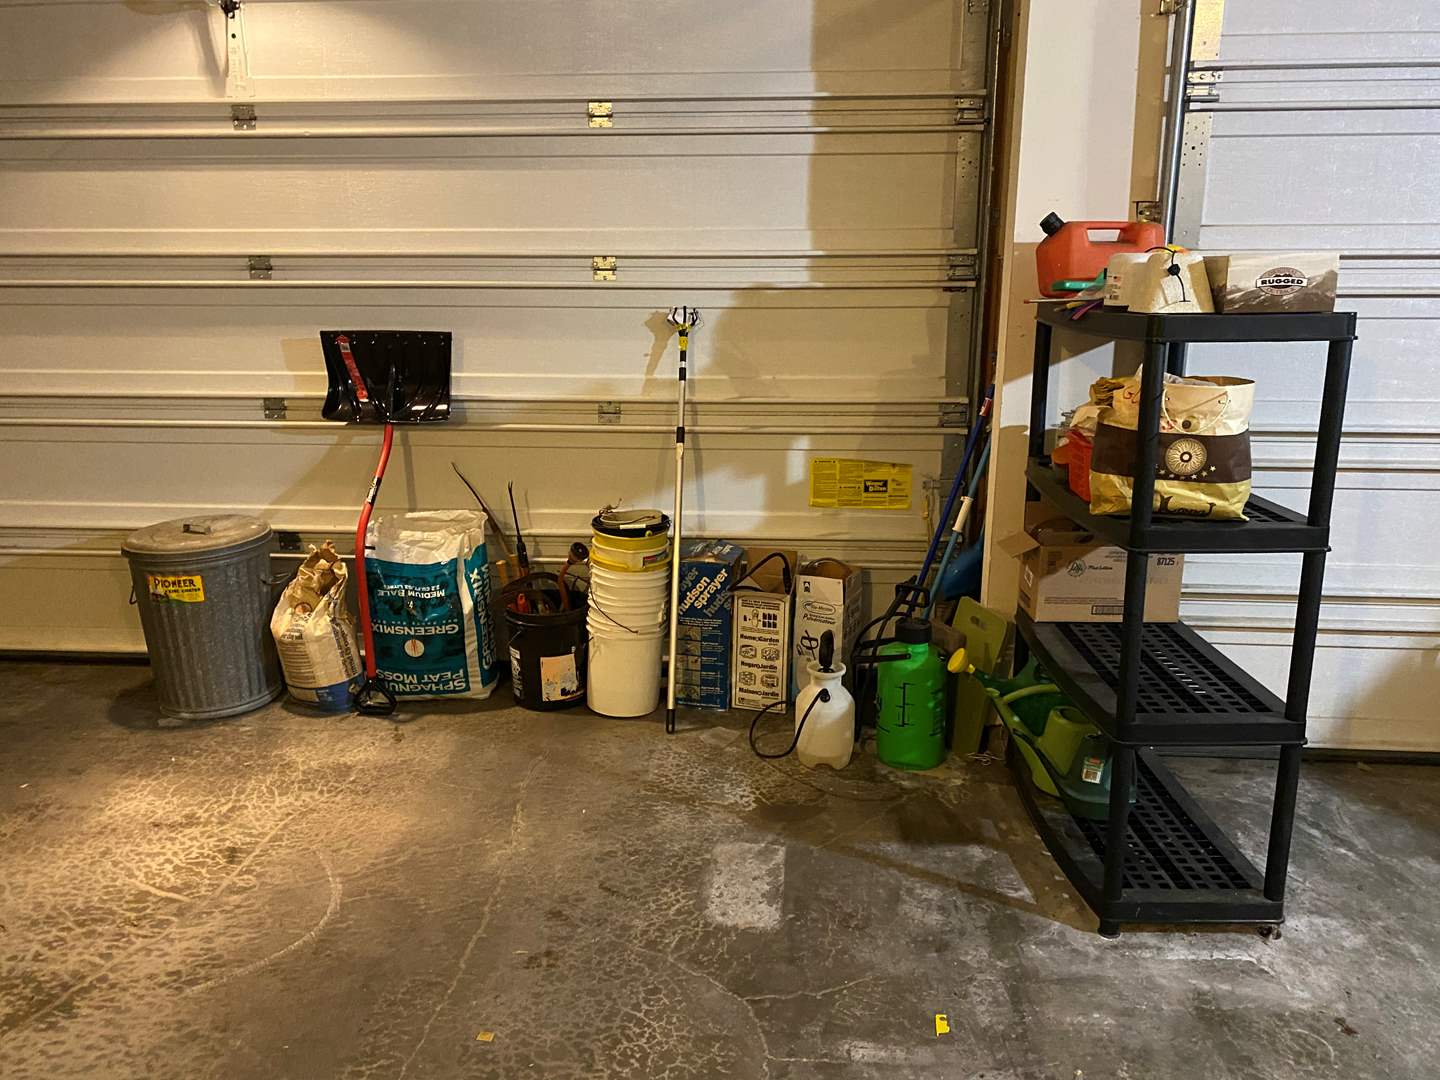 Lot # 363 - Heavy Duty Resin Shelf w/Gardening Supplies, Snow Shovel, Fertilizers, Sprayers, Clippers & More.. (main image)